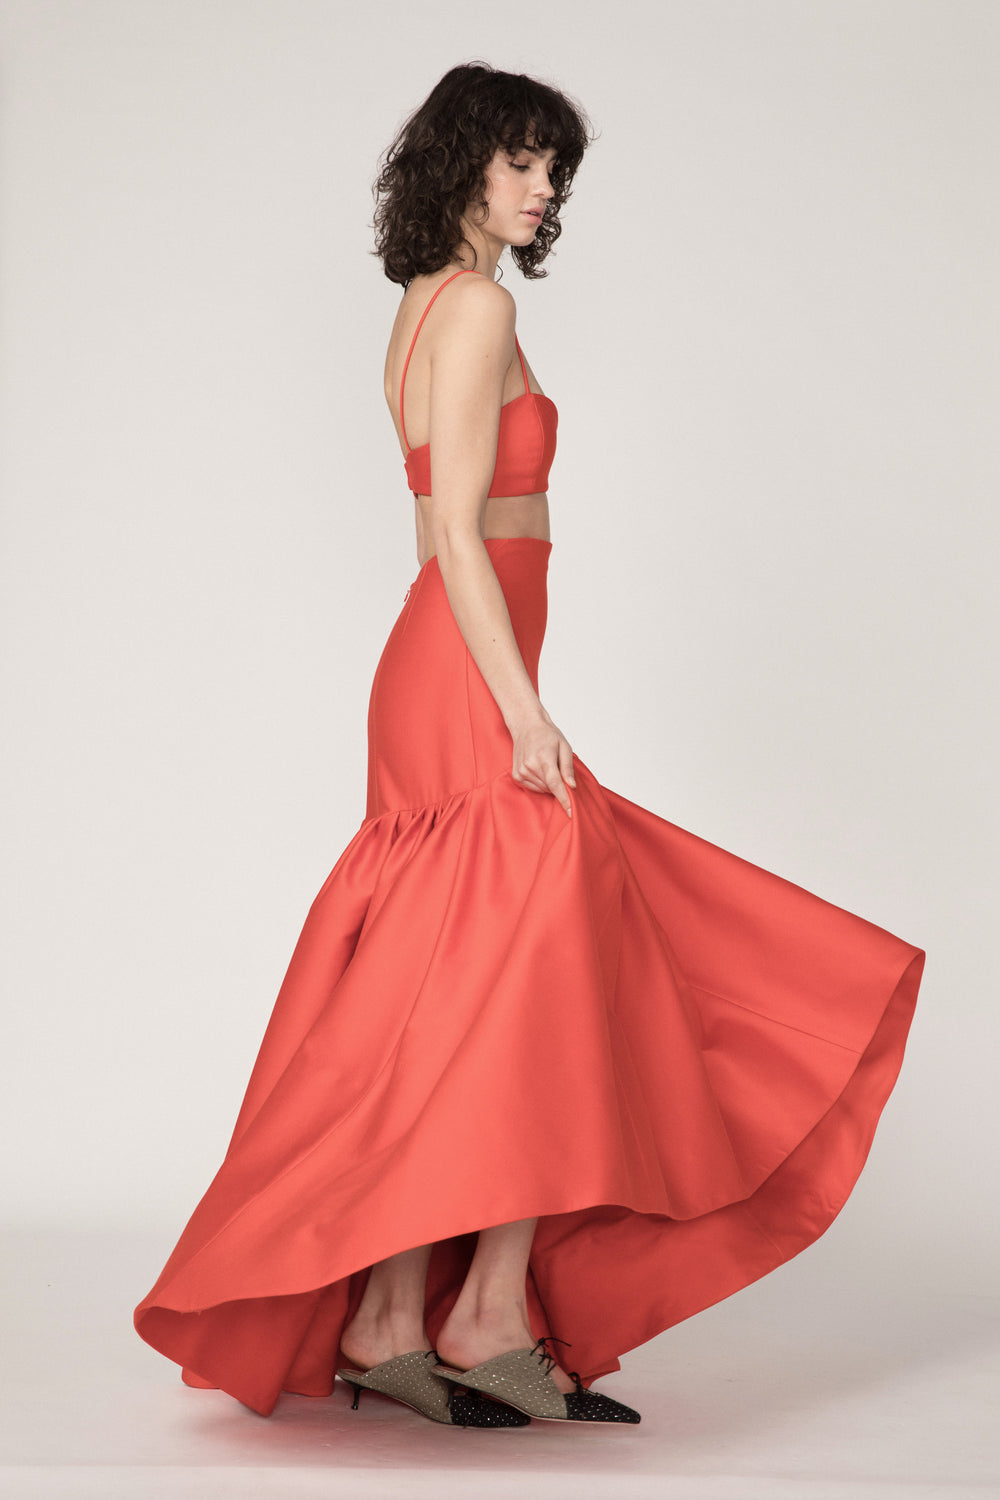 Rosie Assoulin Fall 2019 Brush Skirt. High-waisted ball skirt. High-low hemline. Dramatic flare. Ruched bottom. Red. 100% Cotton. Sizes 0 - 12.